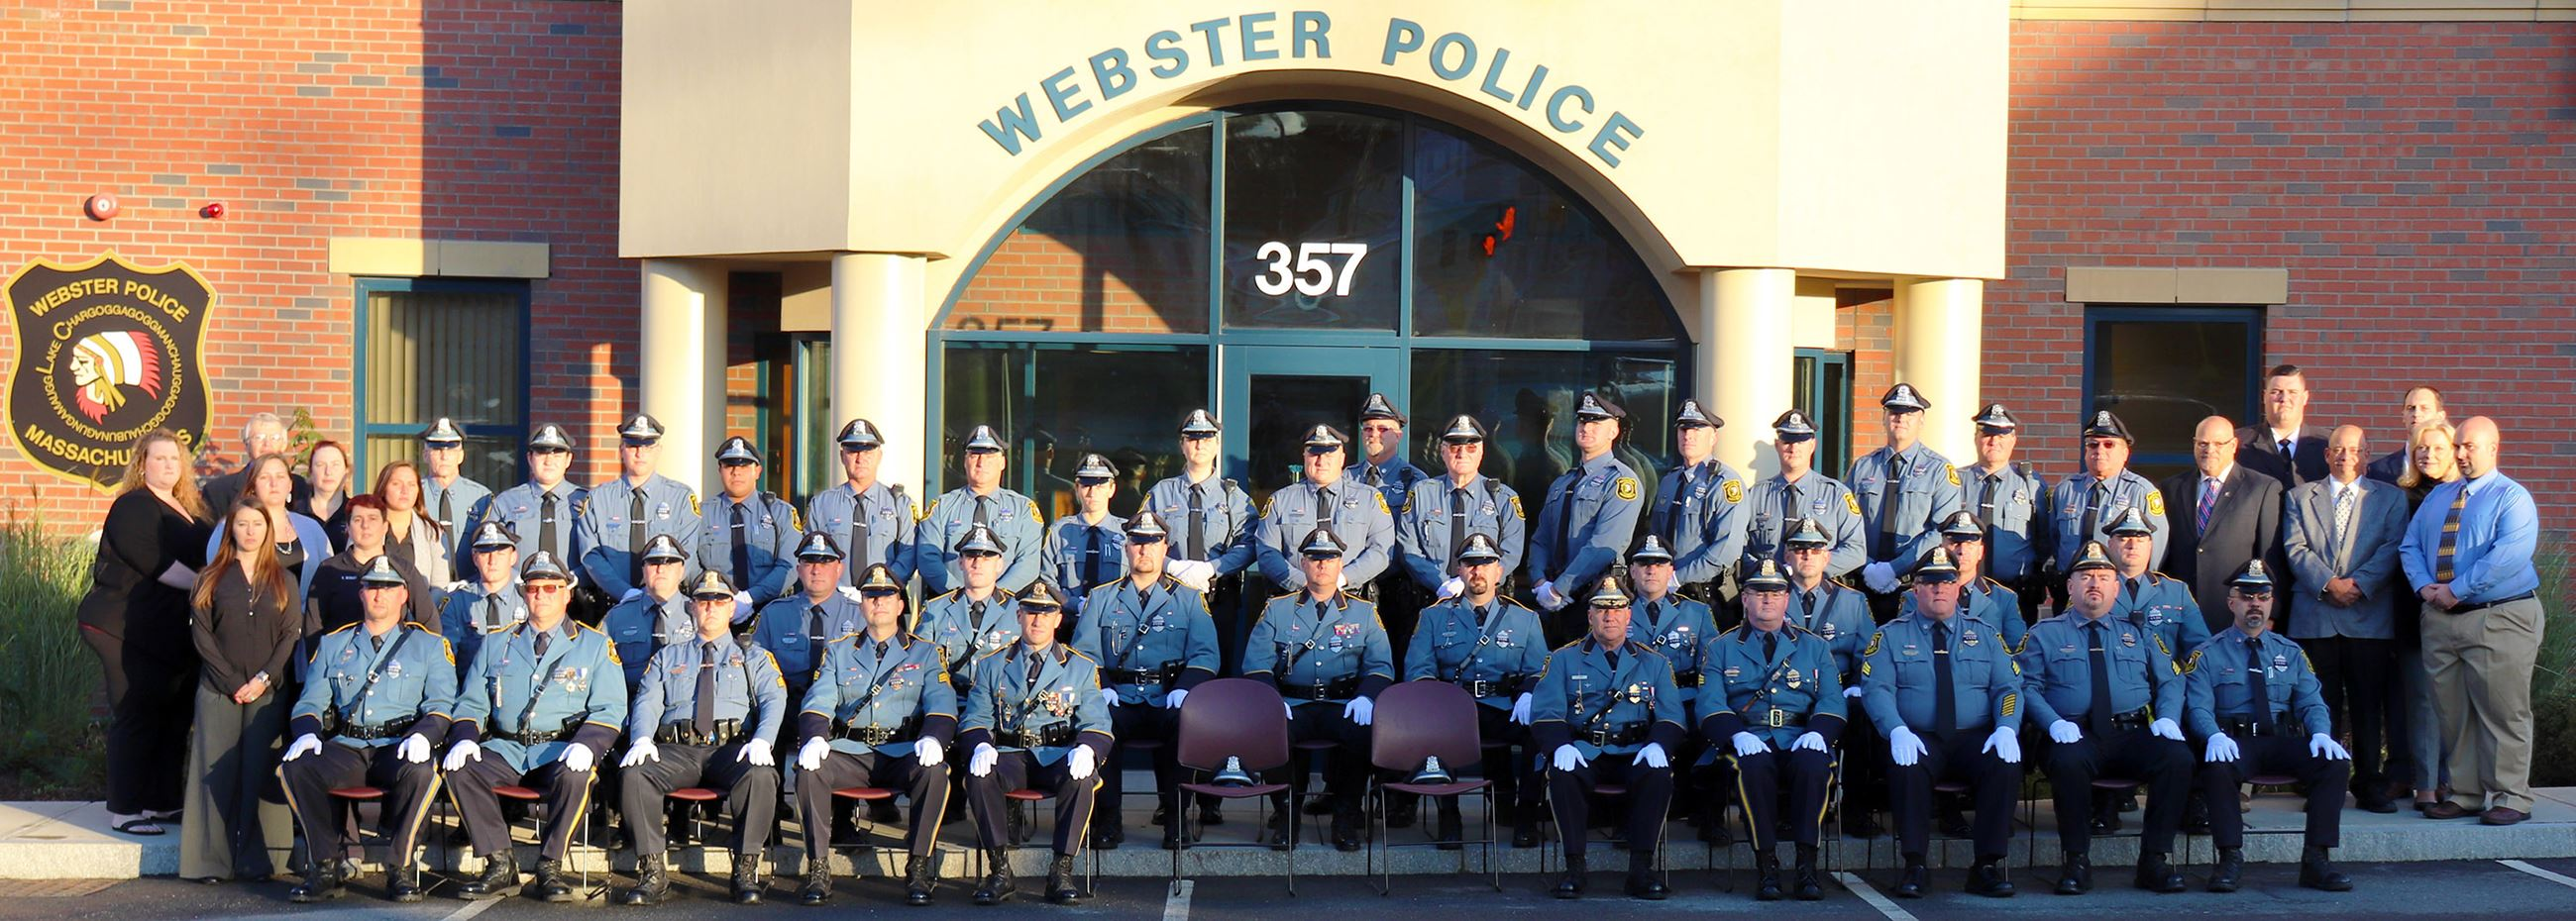 Group photograph of the 2017 Police Force in Uniform outside of headquarters